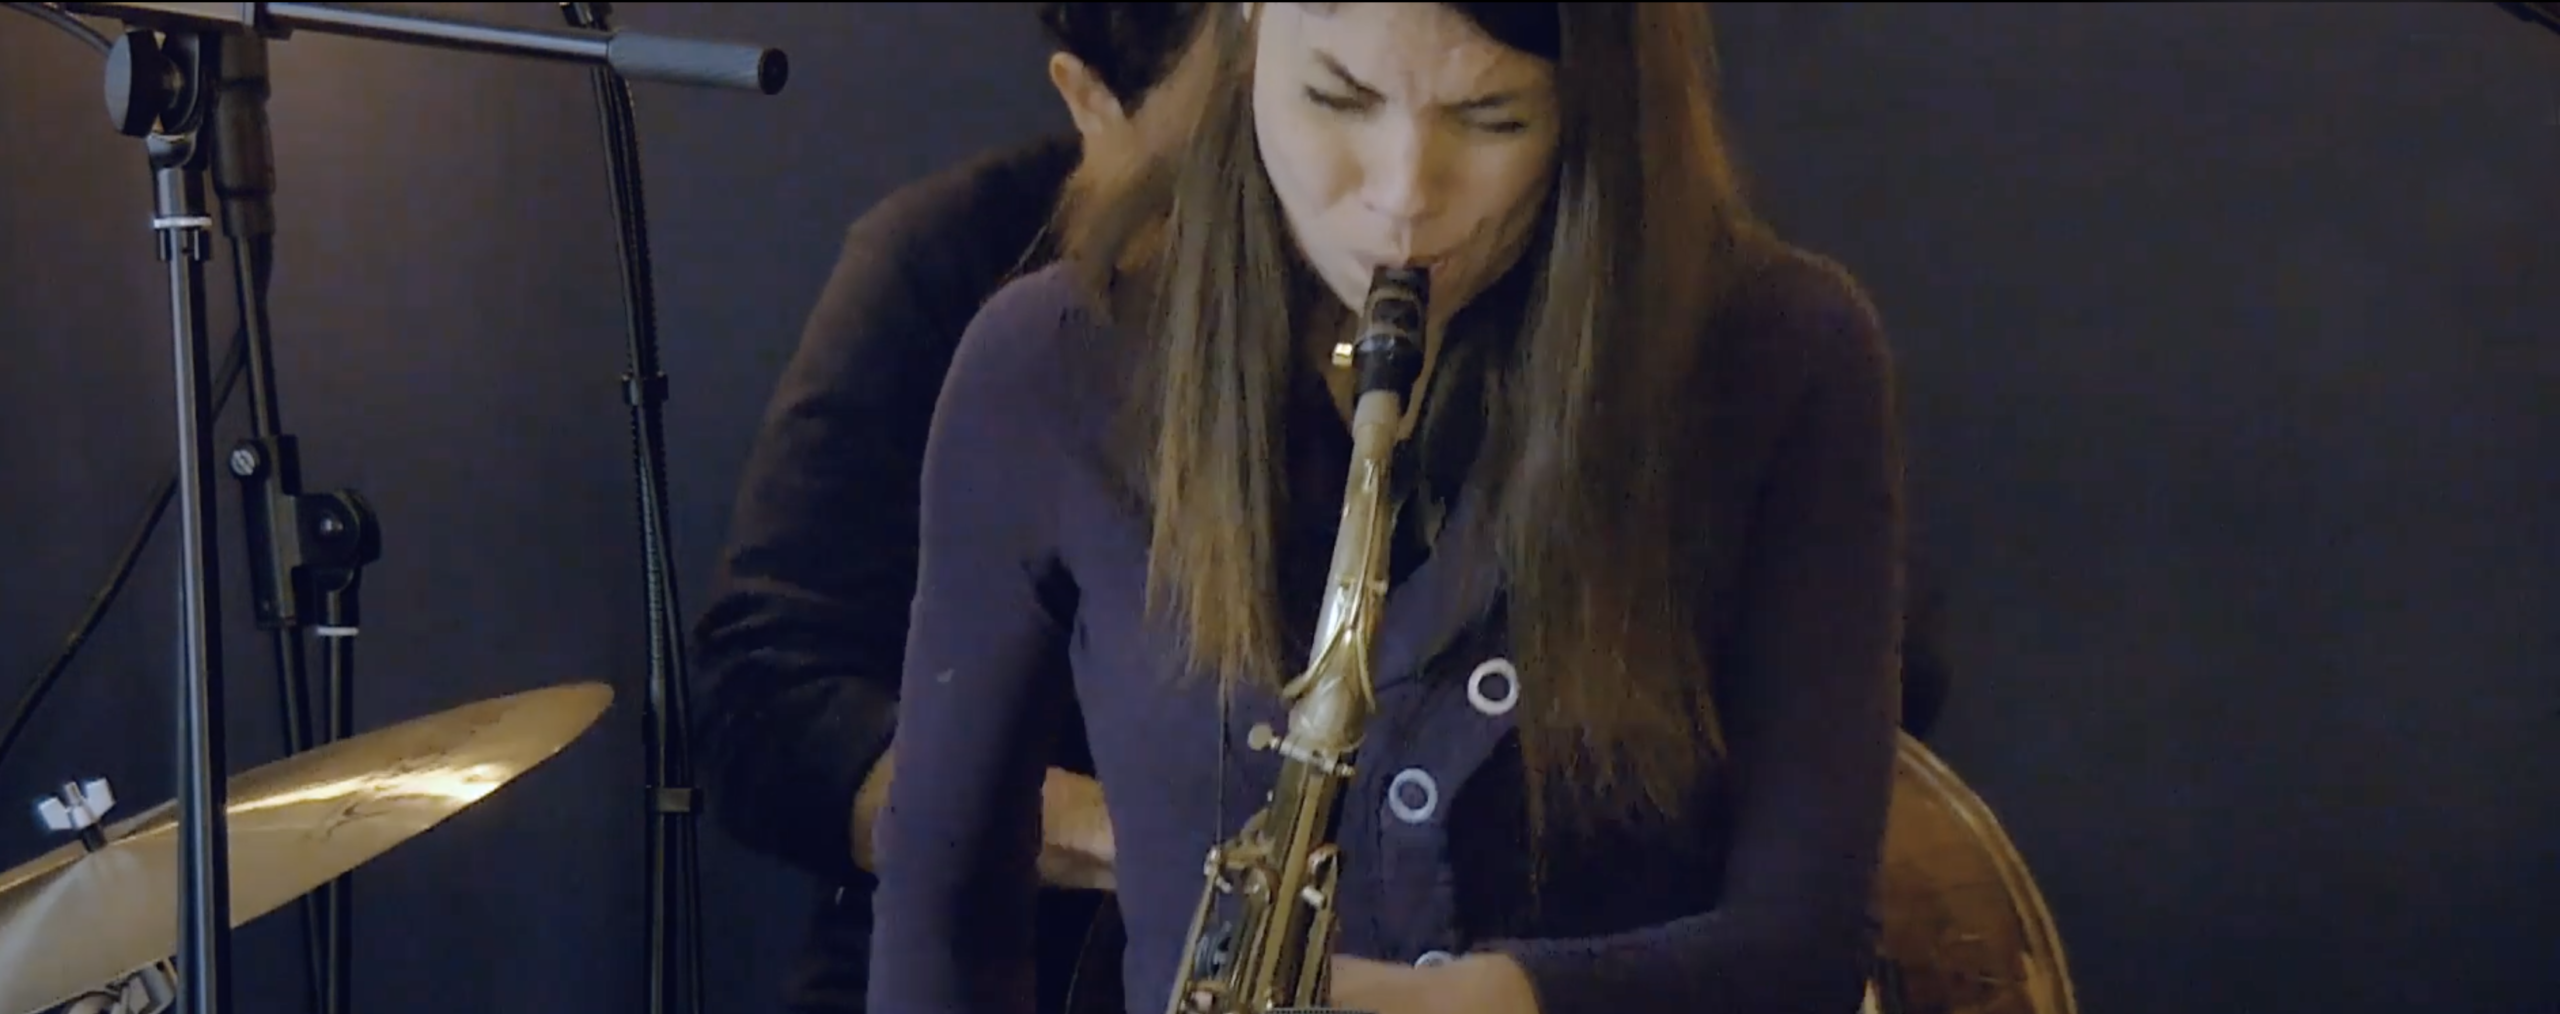 Melissa Aldana chooses to play the Amsterdam Winds tenor saxophone neck